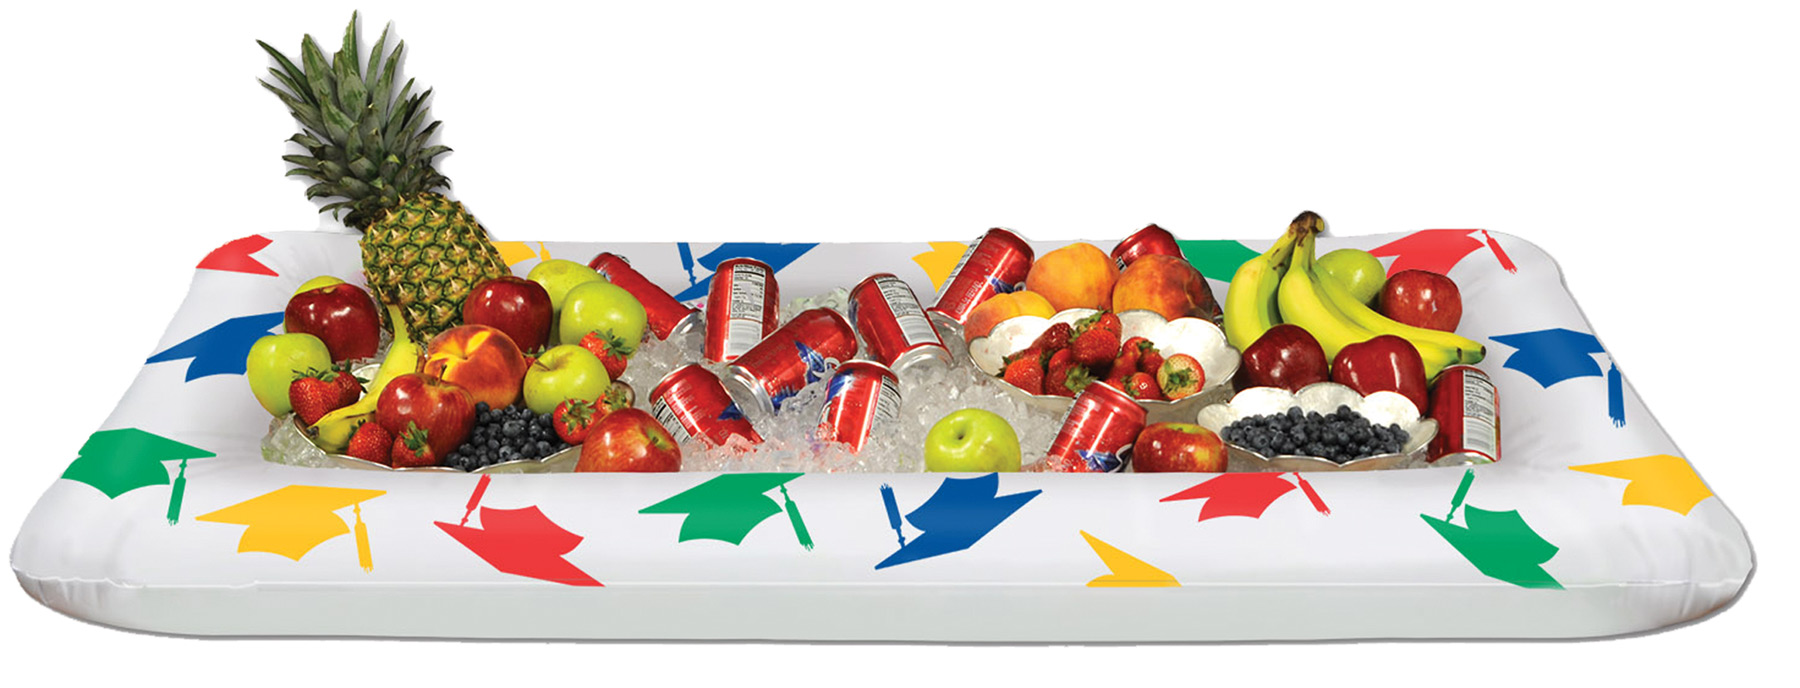 Featured Image for Inflatable Grad Buffet Cooler